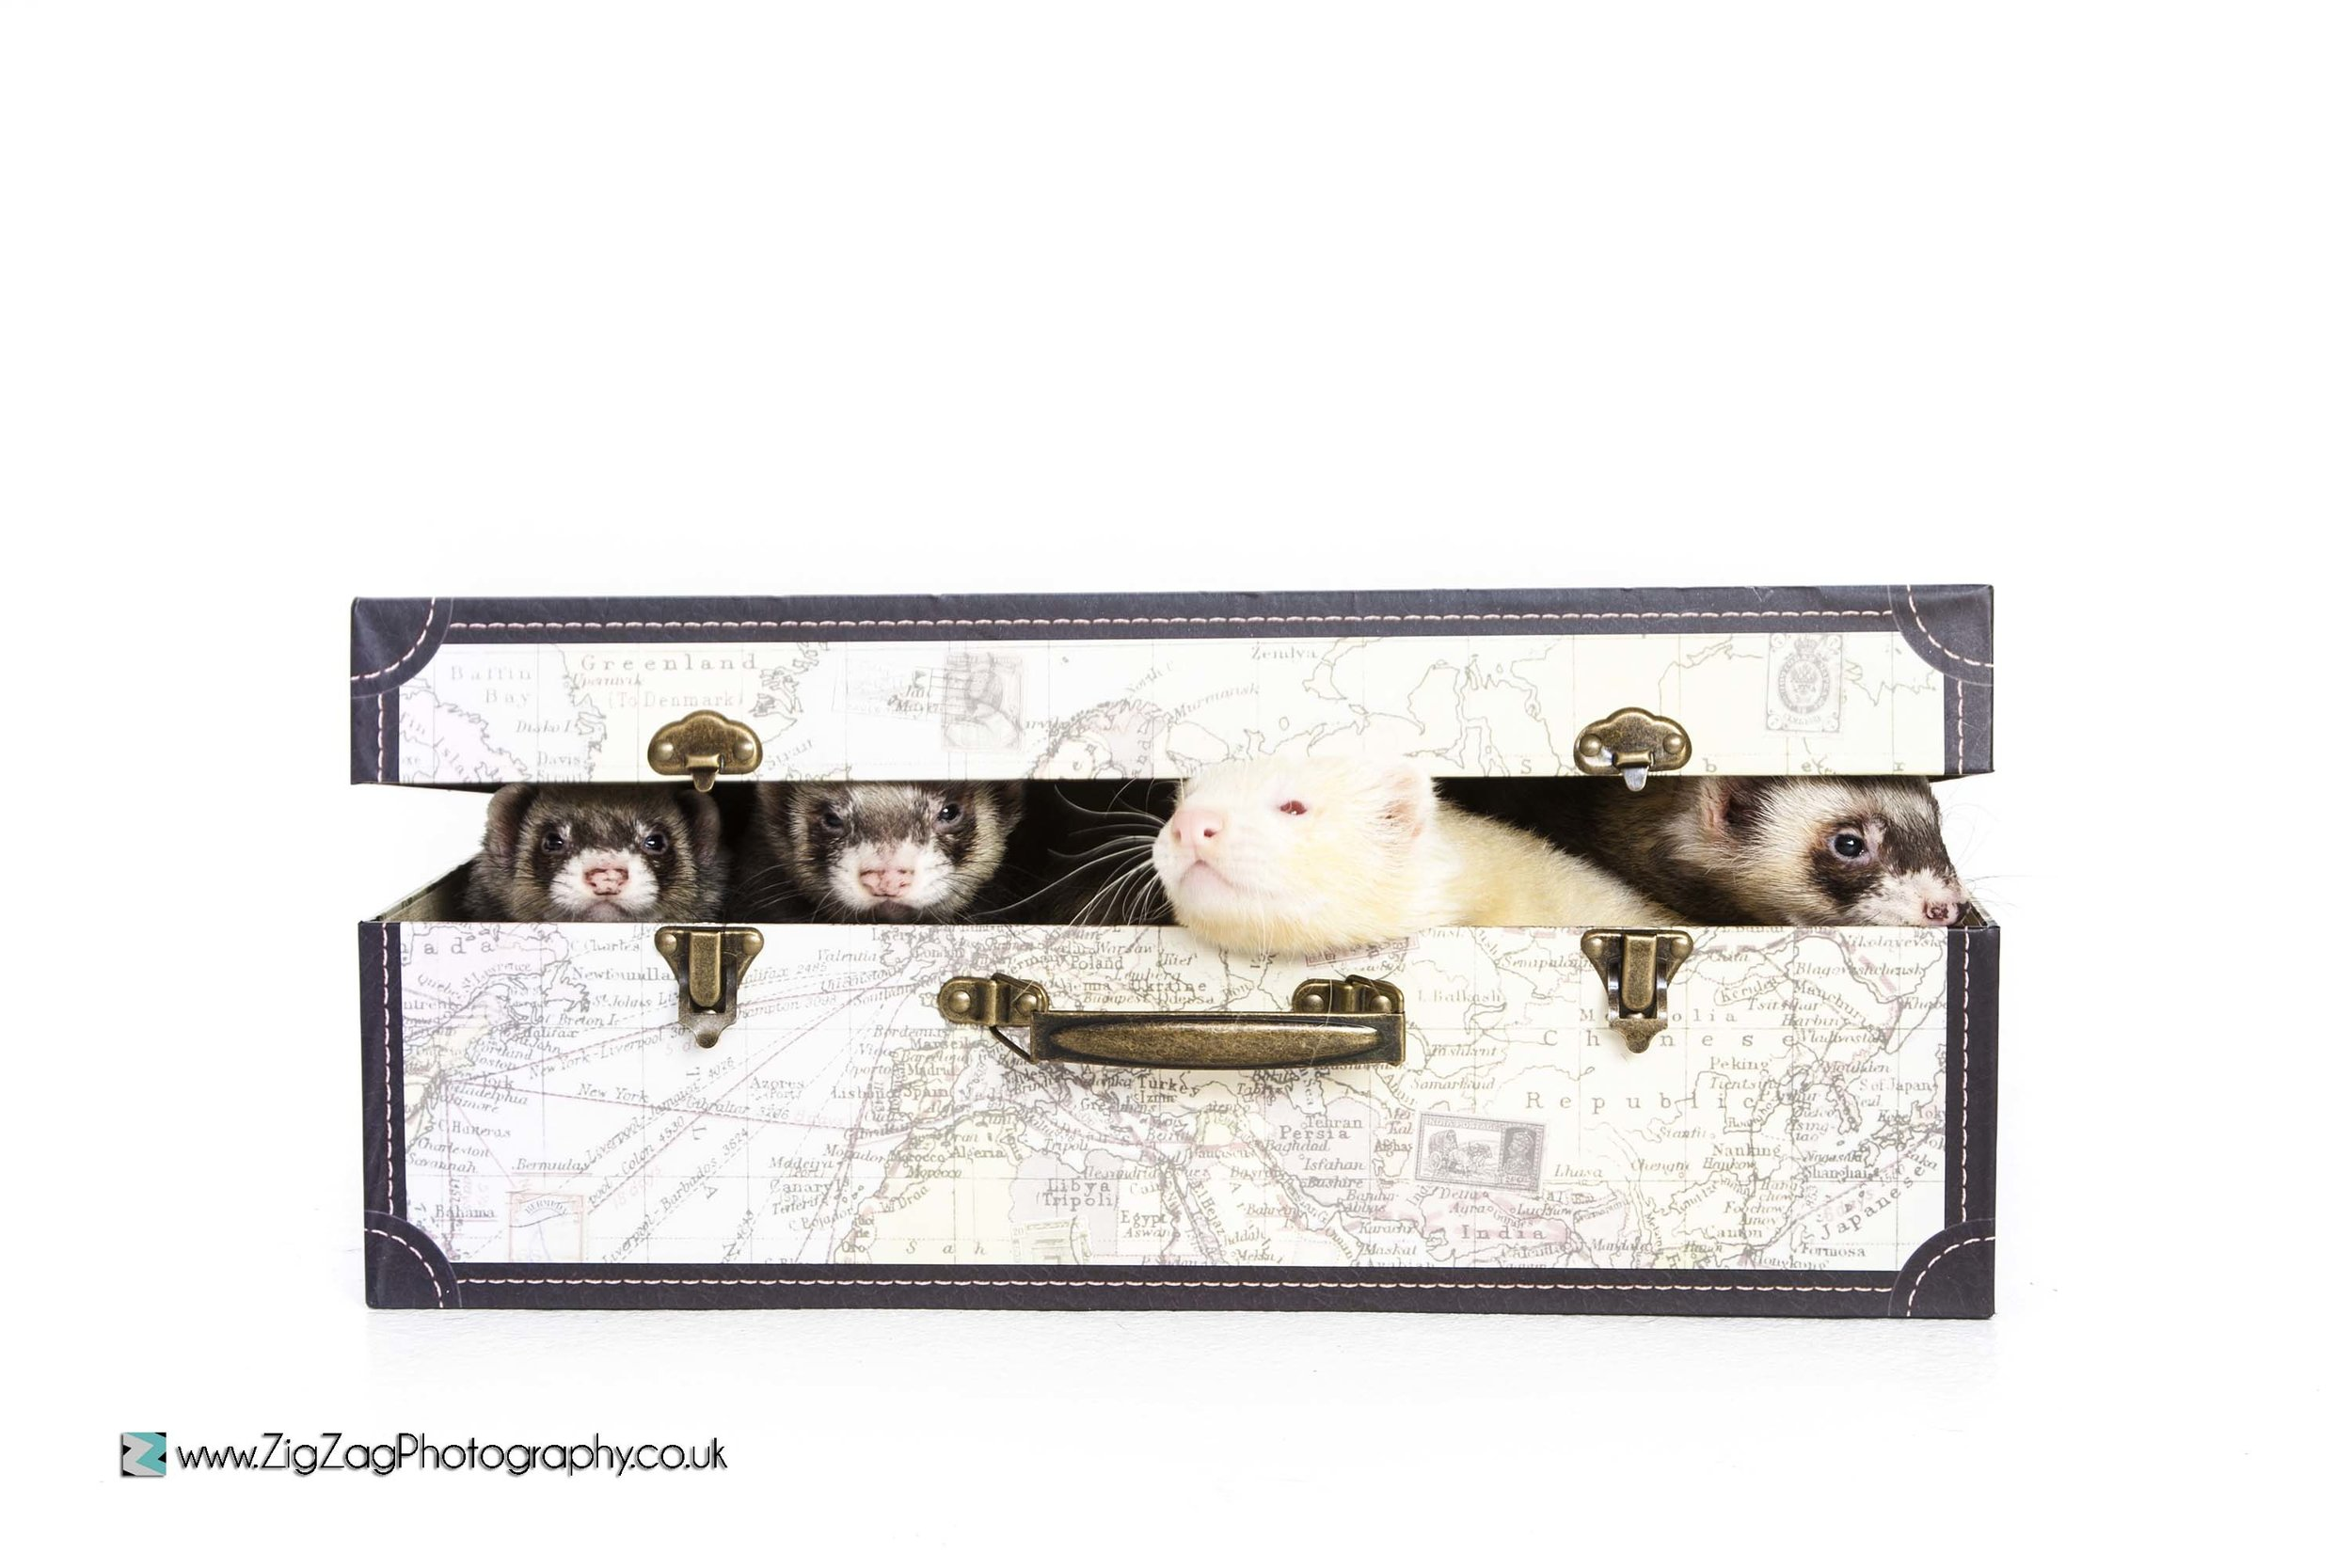 photography-session-studio-leicester-photoshoot-zigzag-case-suitcase-vintage-pets-animal-ferret-furry-small-unusual.jpg